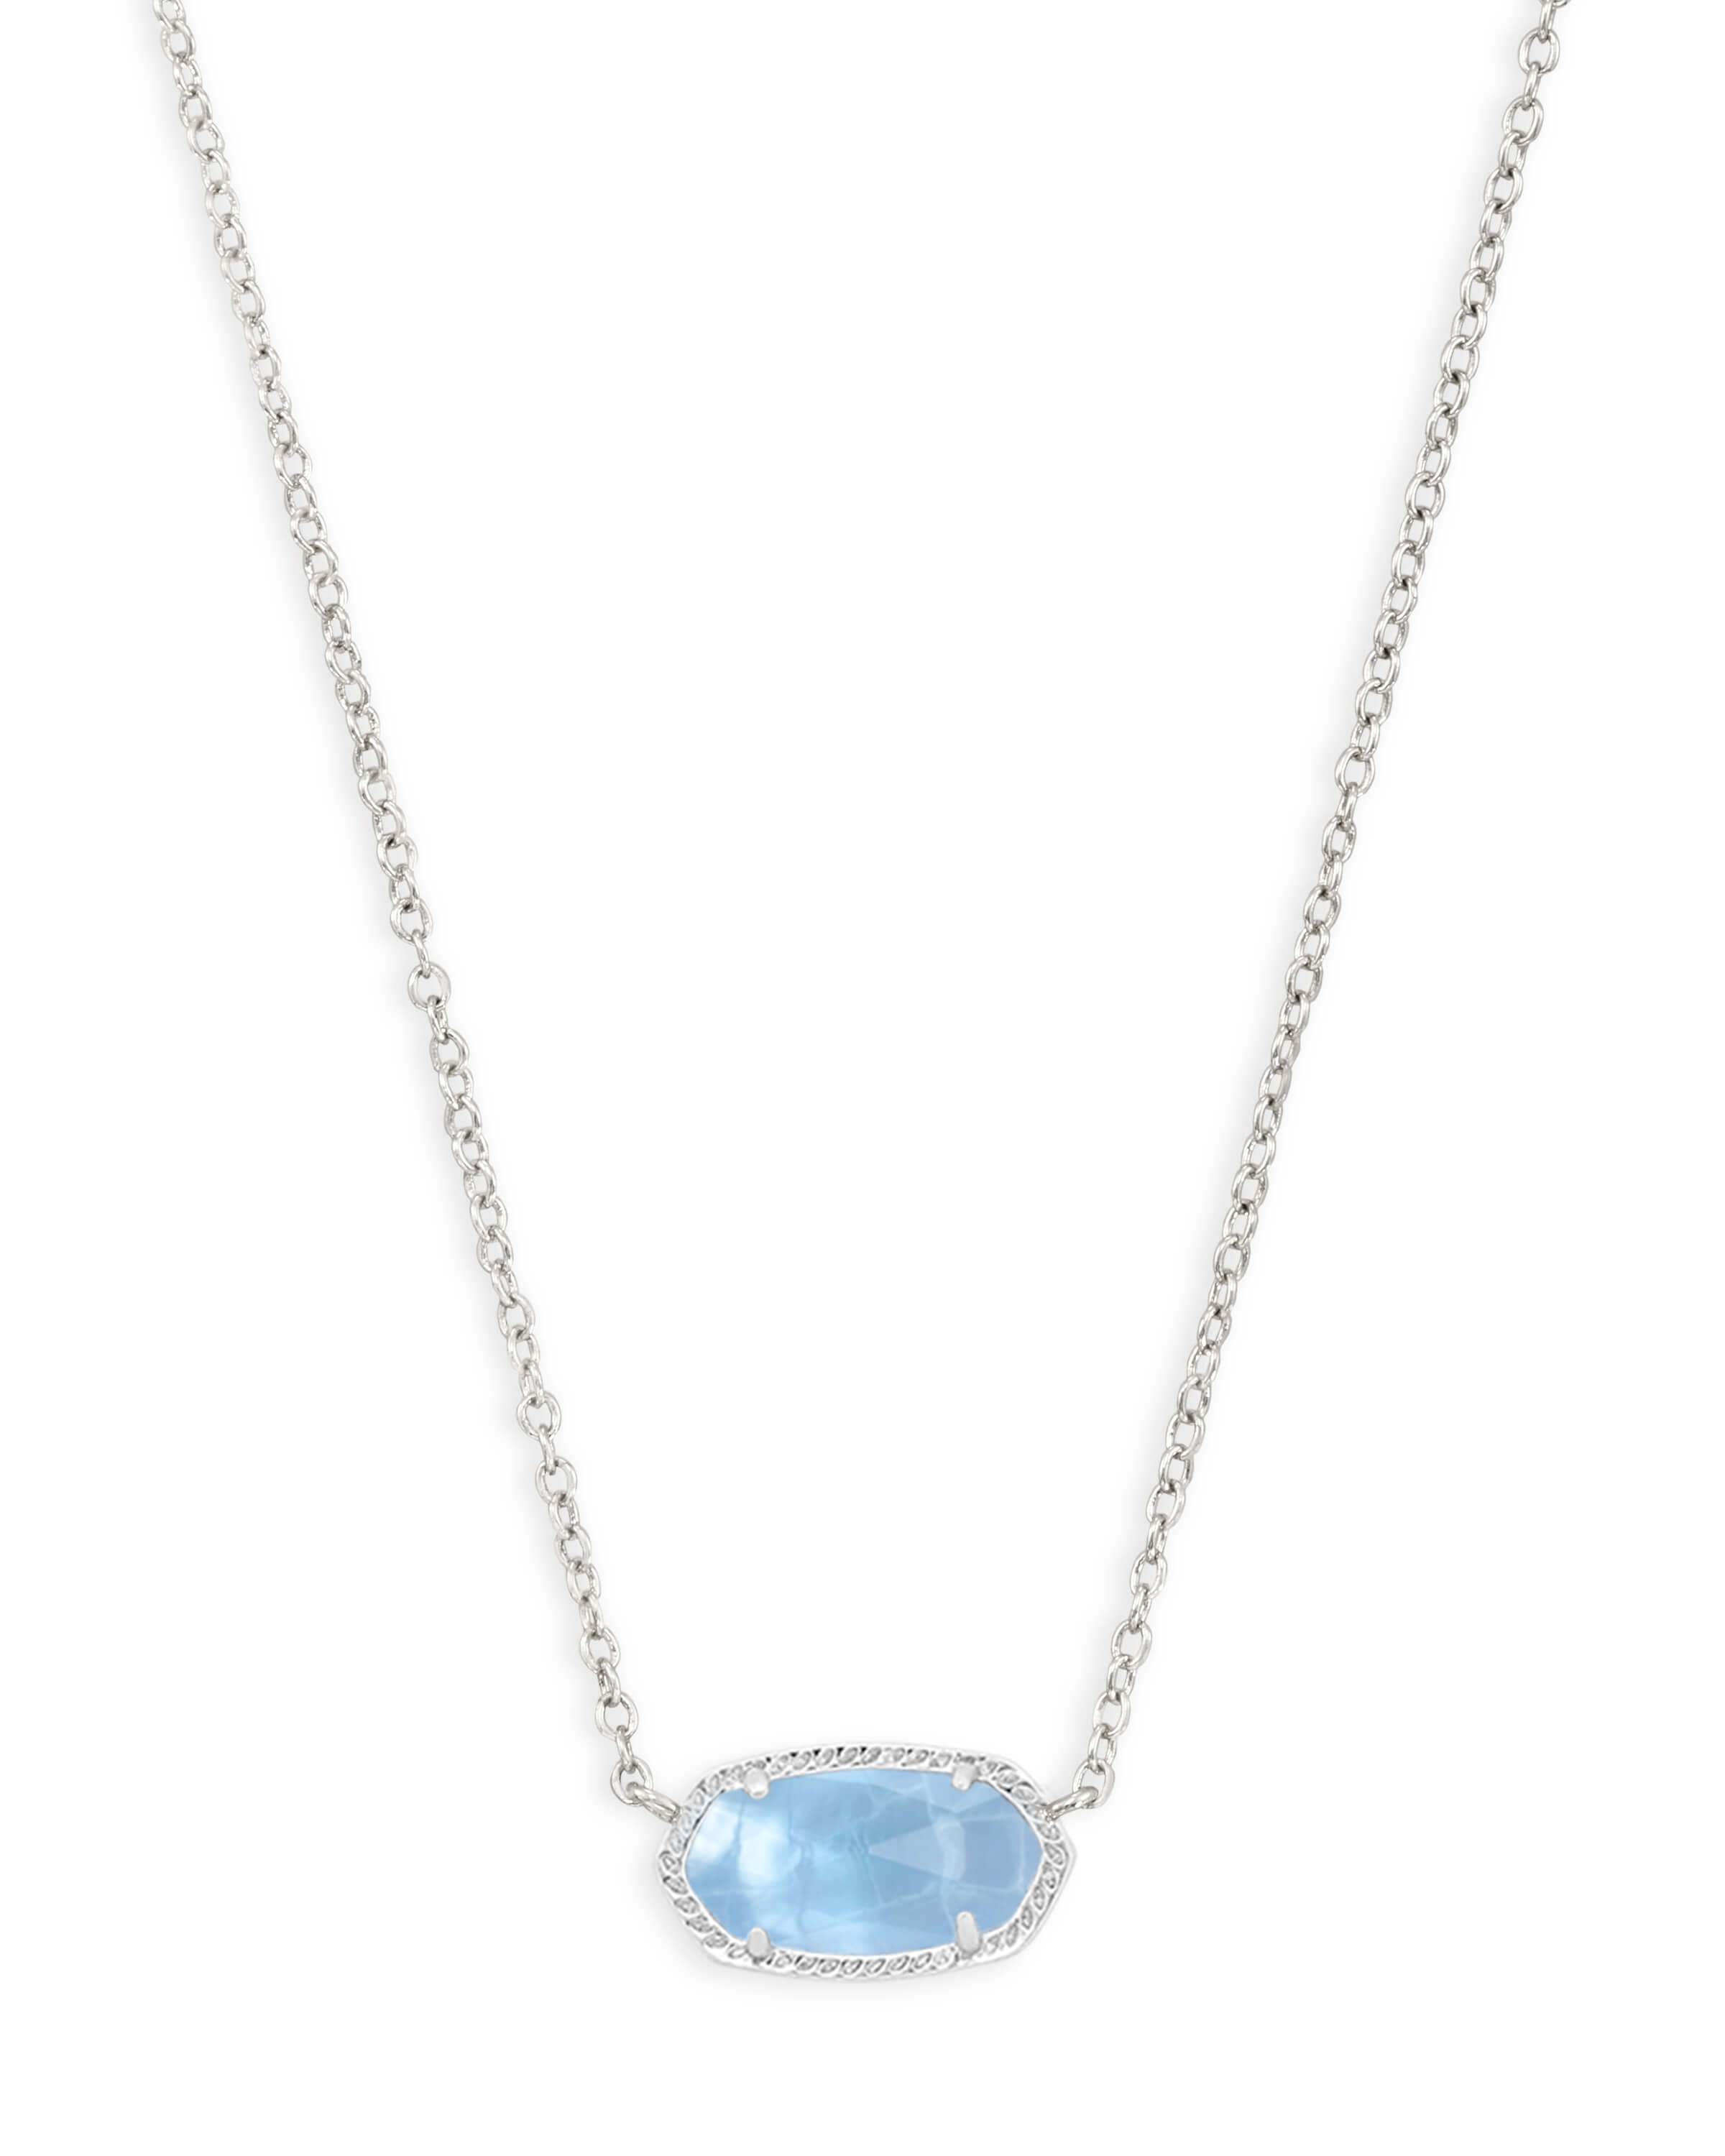 Elisa Silver Pendant Necklace in Sky Blue Illusion